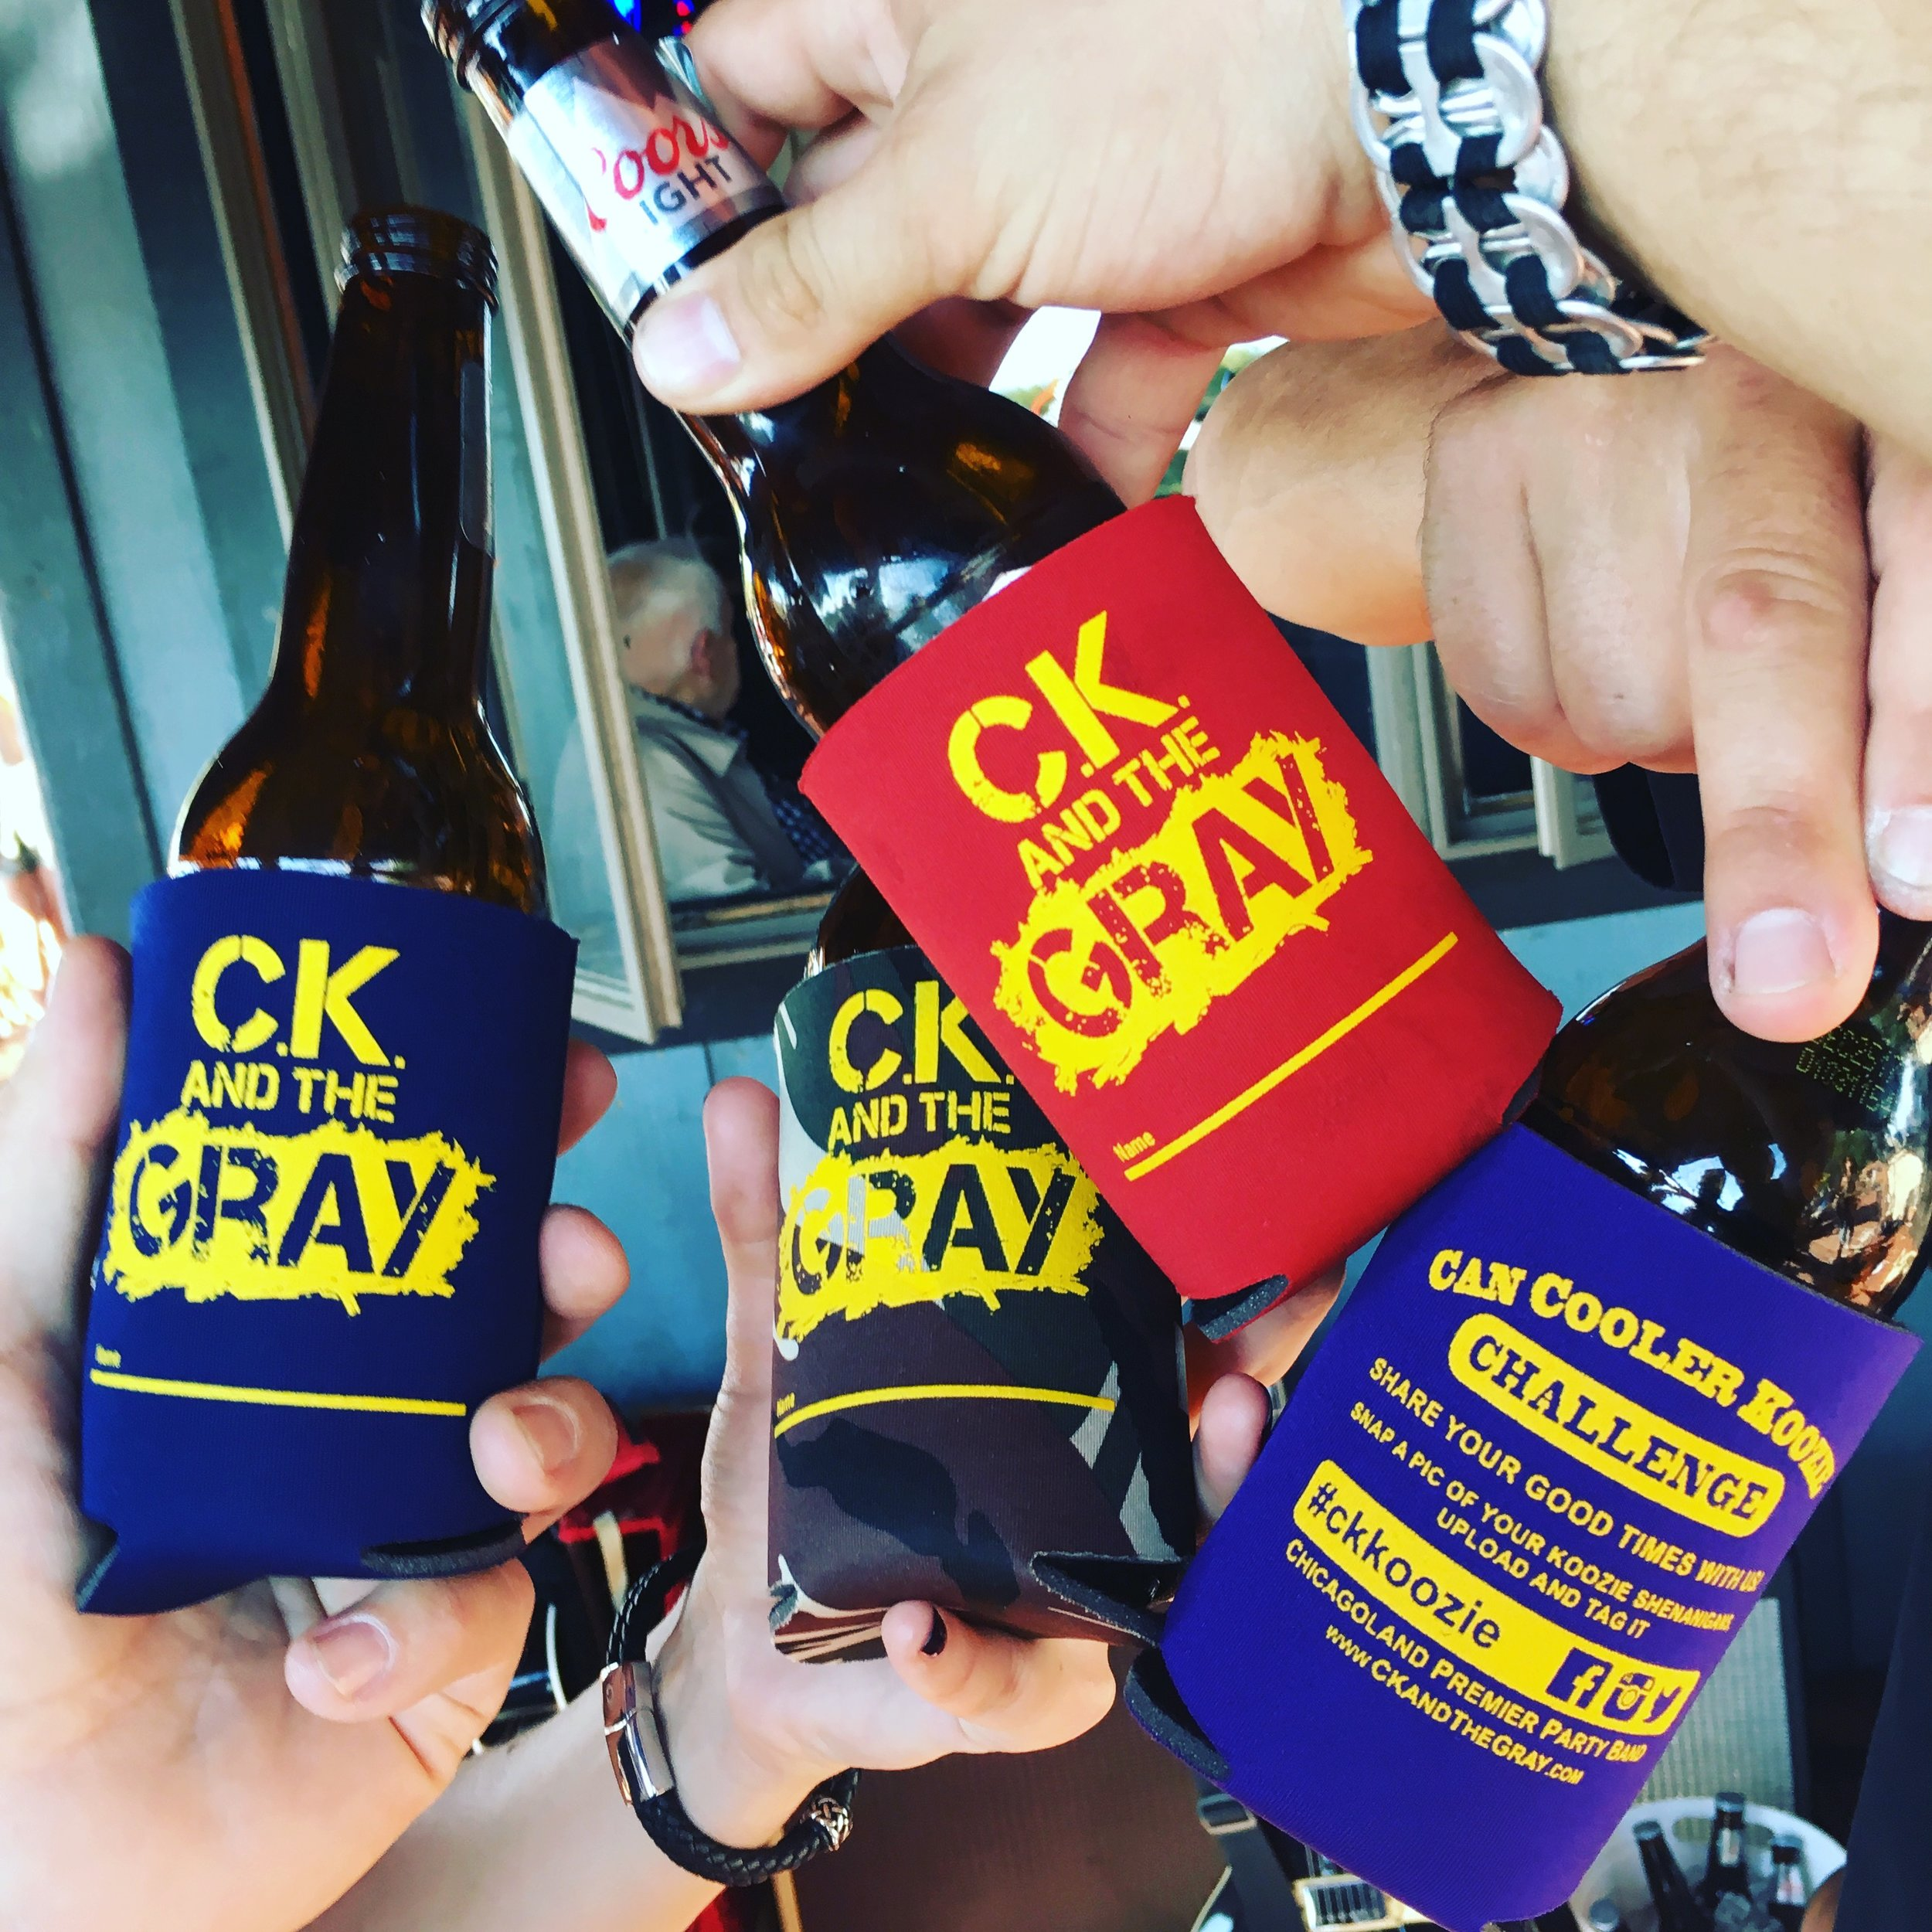 #ckkoozie with C.K. and The Gray